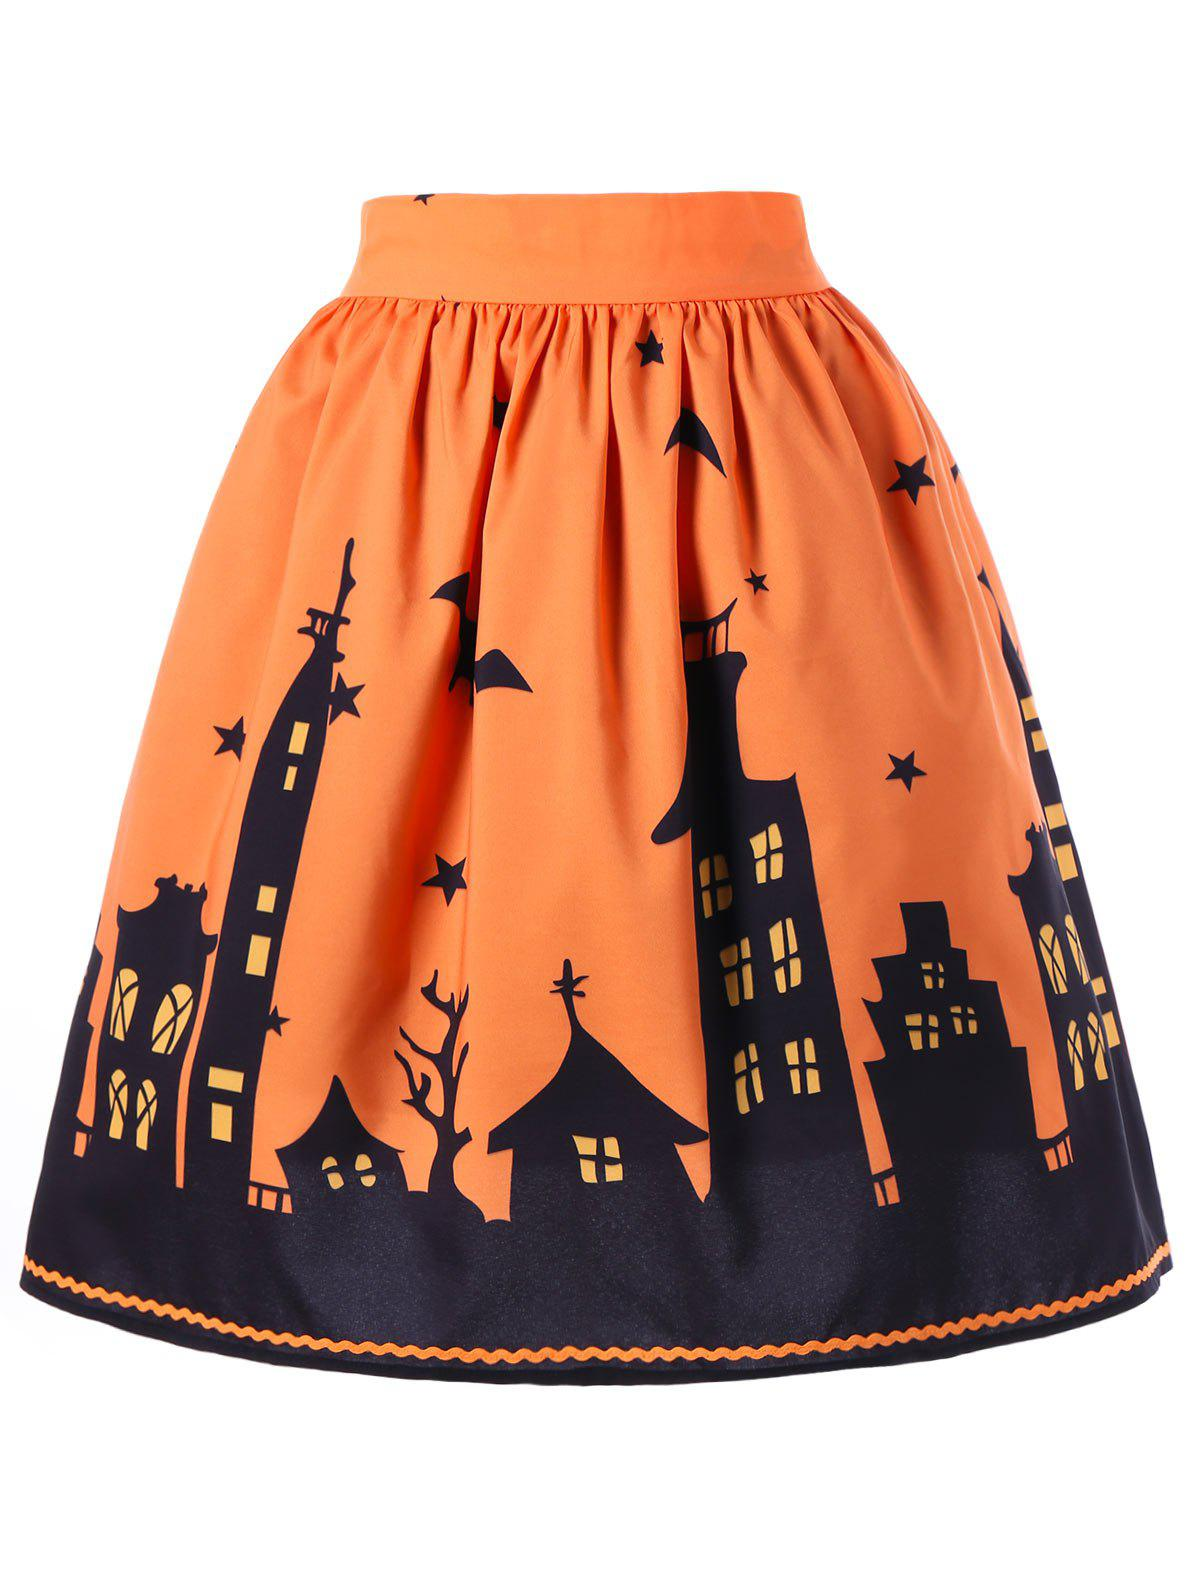 Halloween Bat Print A-line SkirtWOMEN<br><br>Size: M; Color: ORANGE; Material: Polyester; Length: Knee-Length; Silhouette: A-Line; Pattern Type: Others; Season: Fall,Spring; Weight: 0.2000kg; Package Contents: 1 x Skirt;